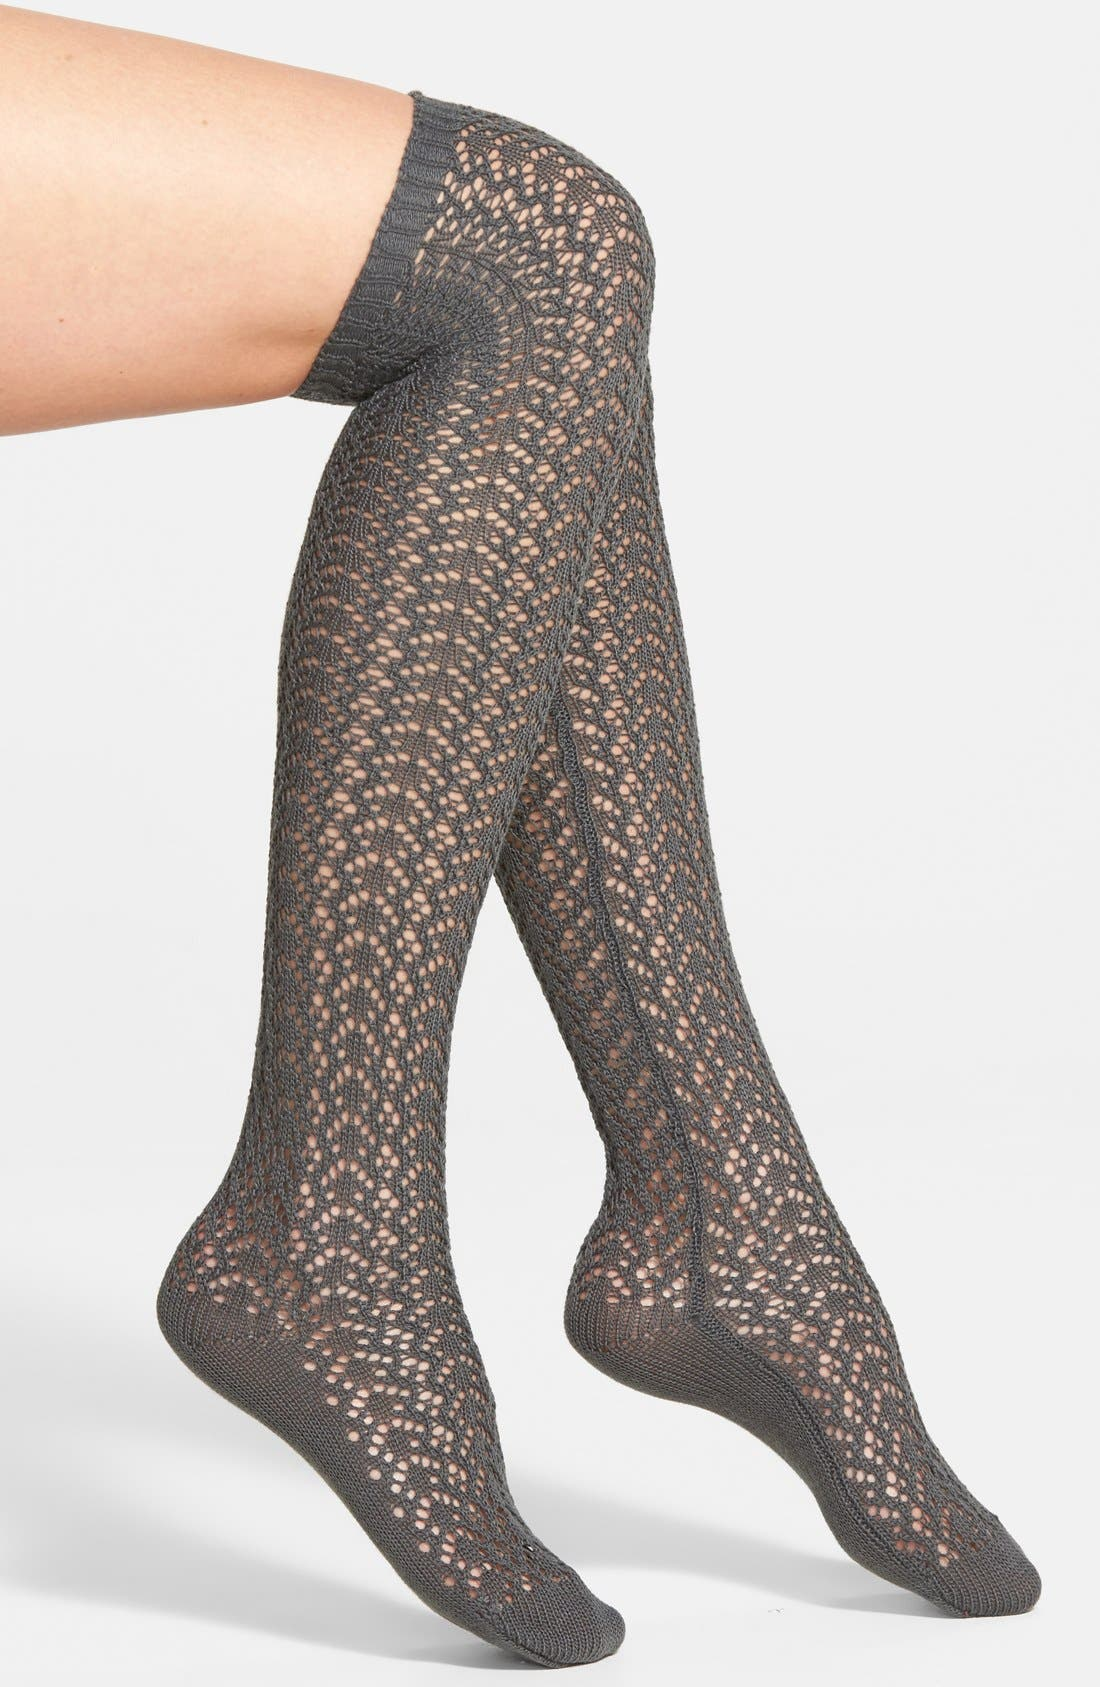 'Sailors' Openwork Knit Over the Knee Socks,                             Main thumbnail 1, color,                             065